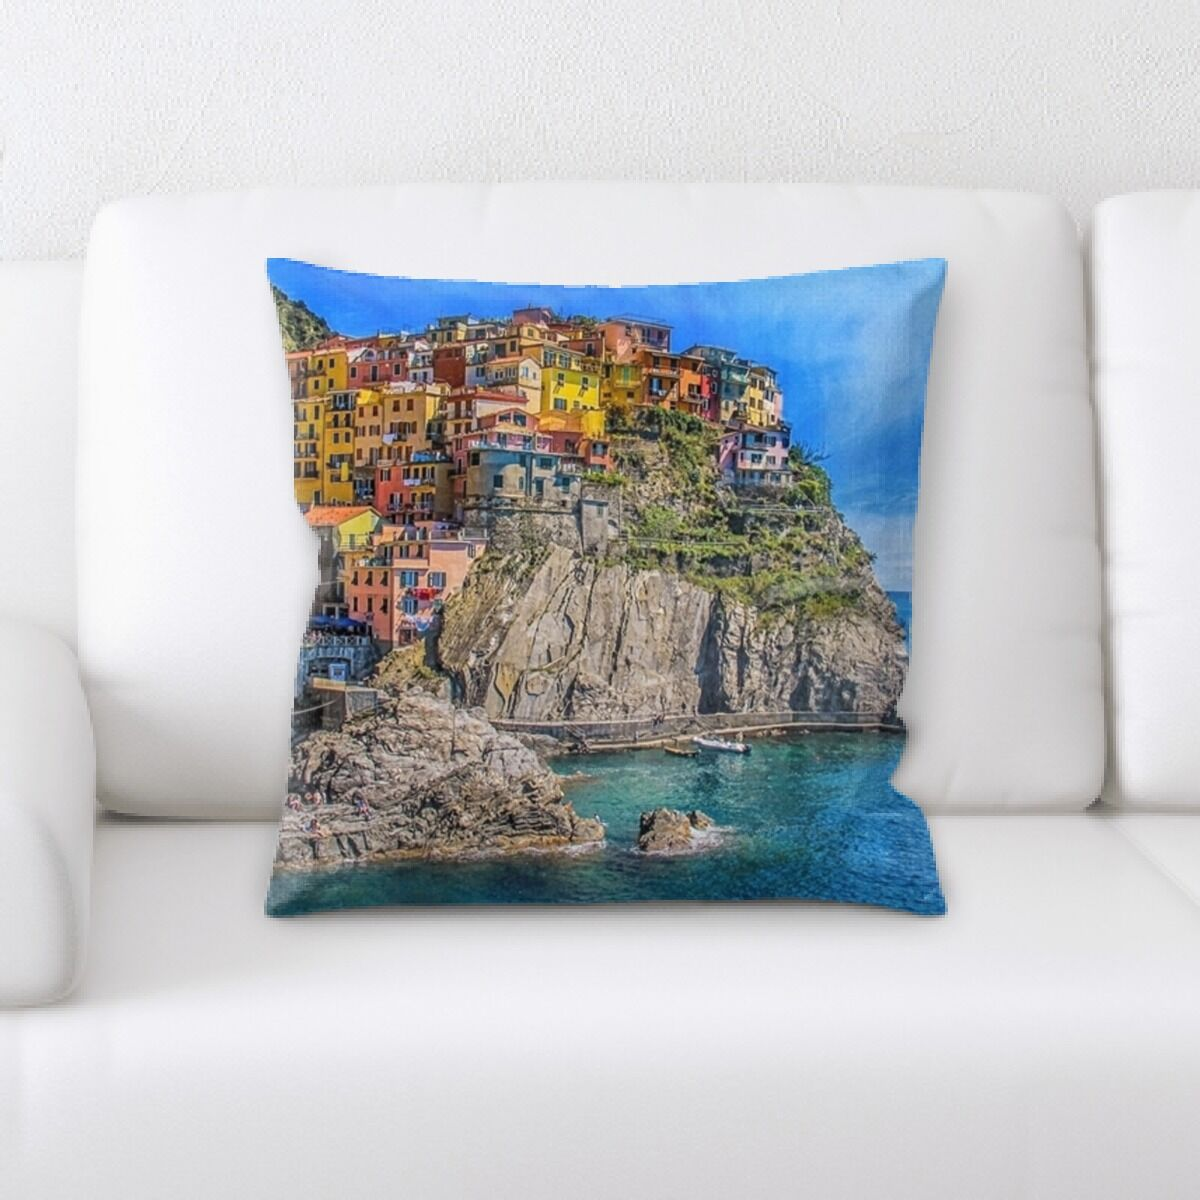 Landscapes (23) Throw Pillow